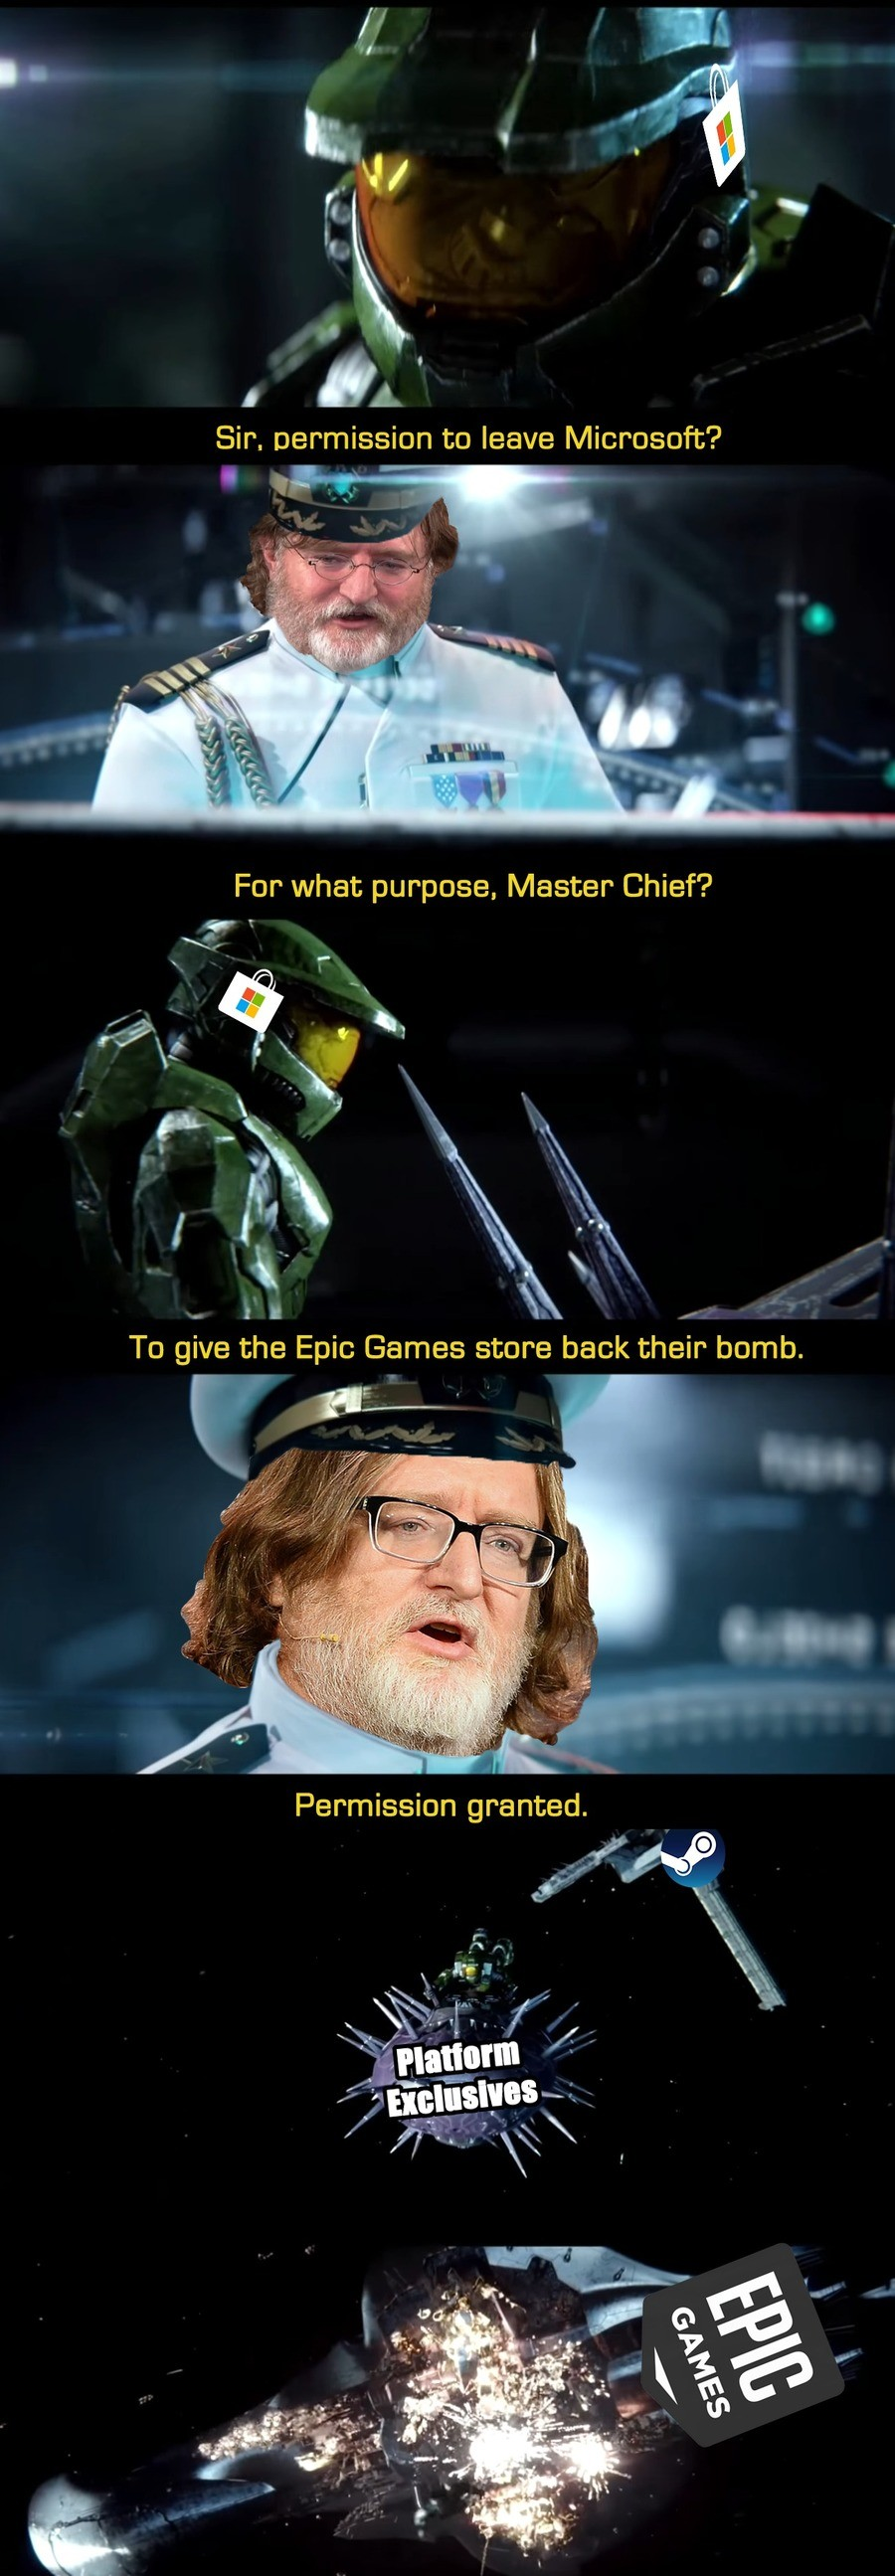 Halo Meme Renaissance. .. Laucher =/= platform tho. You need to buy a 300$+ Ps4 to play Bloodborne. You don't need to pay for a launcher. Compare apples with apples.